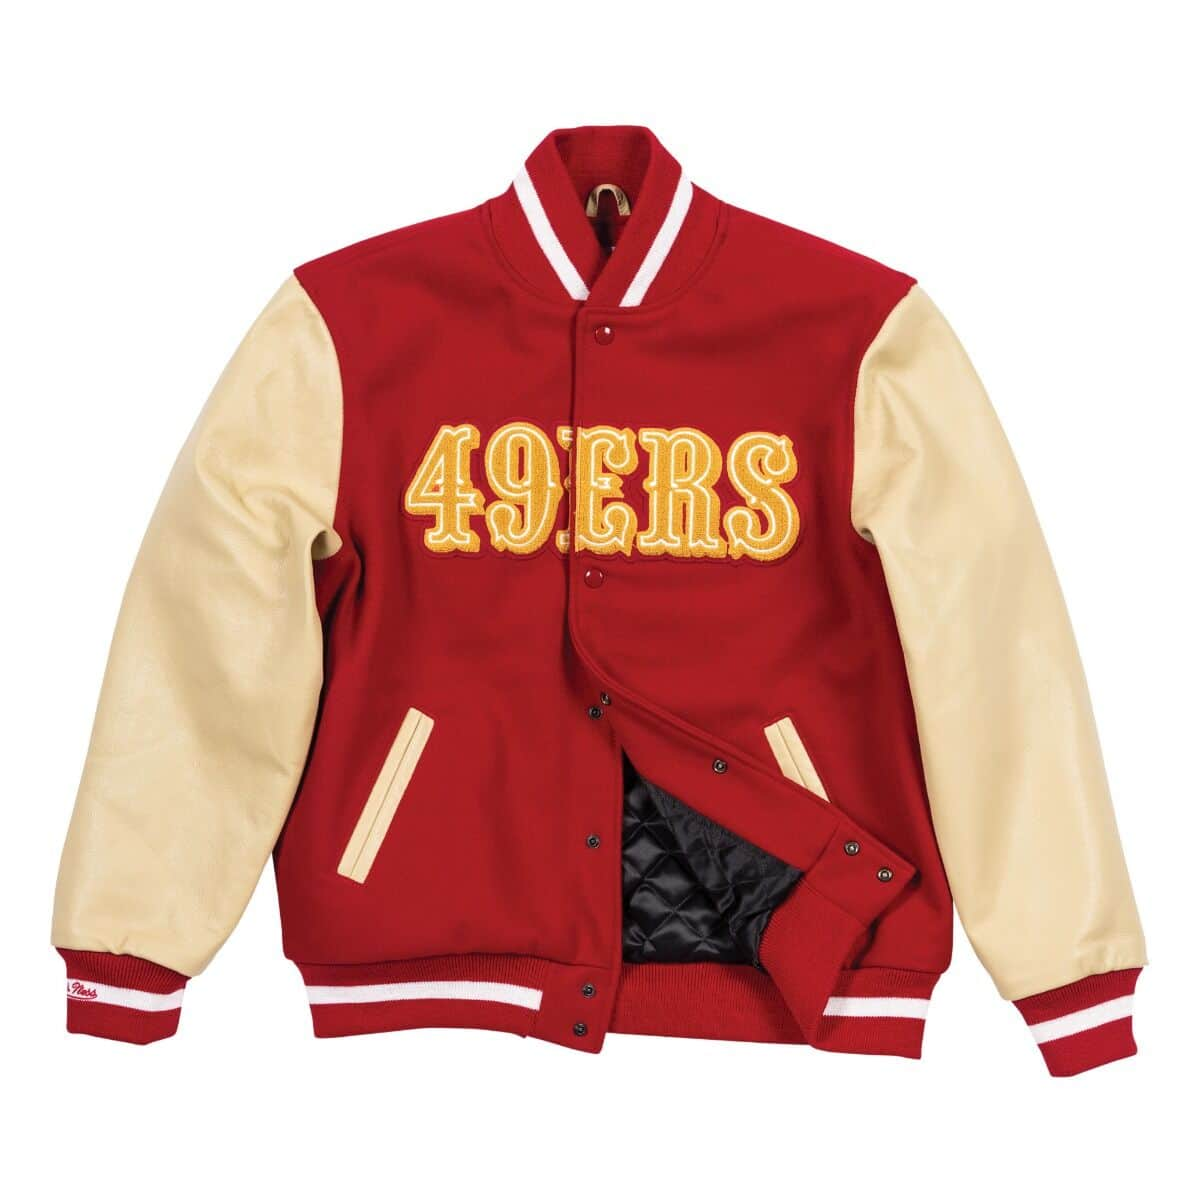 Authentic Wool Varsity Jacket San Francisco 49ers